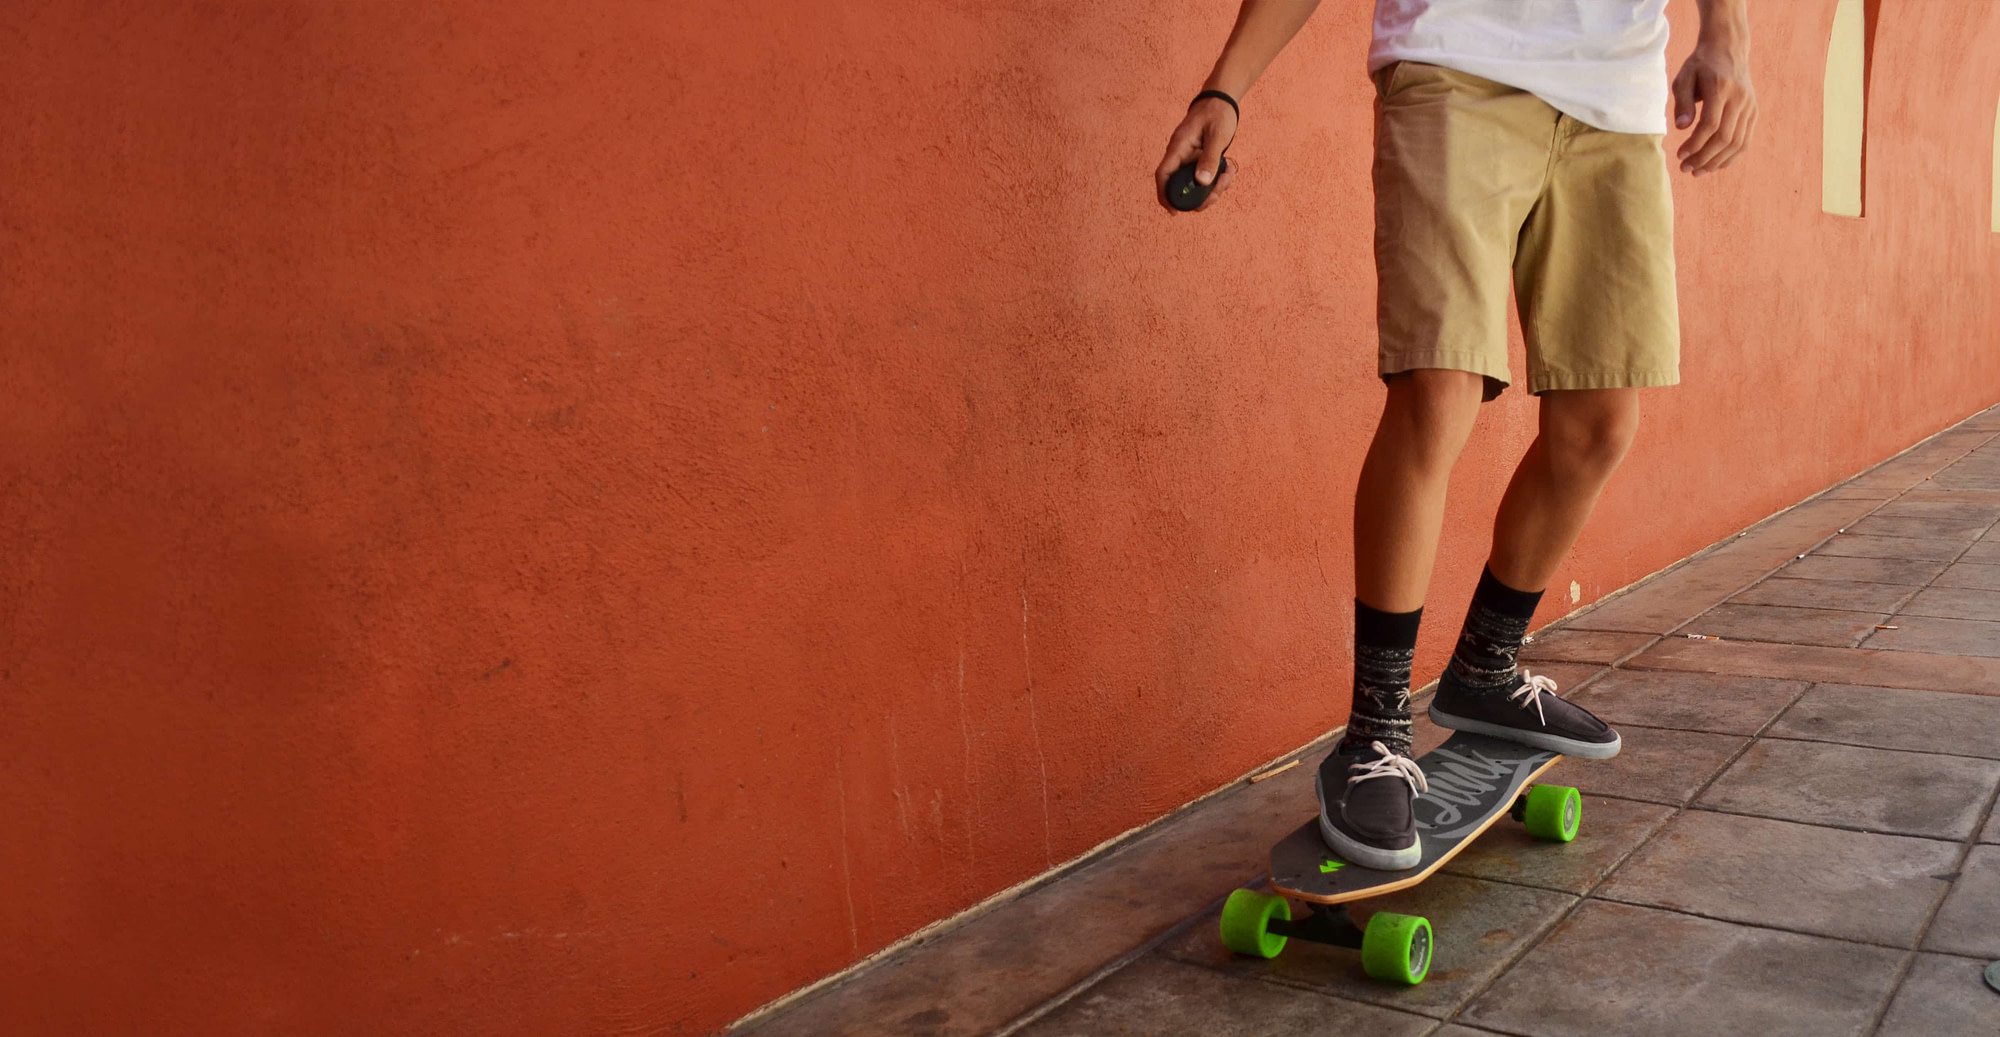 5 Cheaper Alternatives To The Boosted Board Electric Skateboard